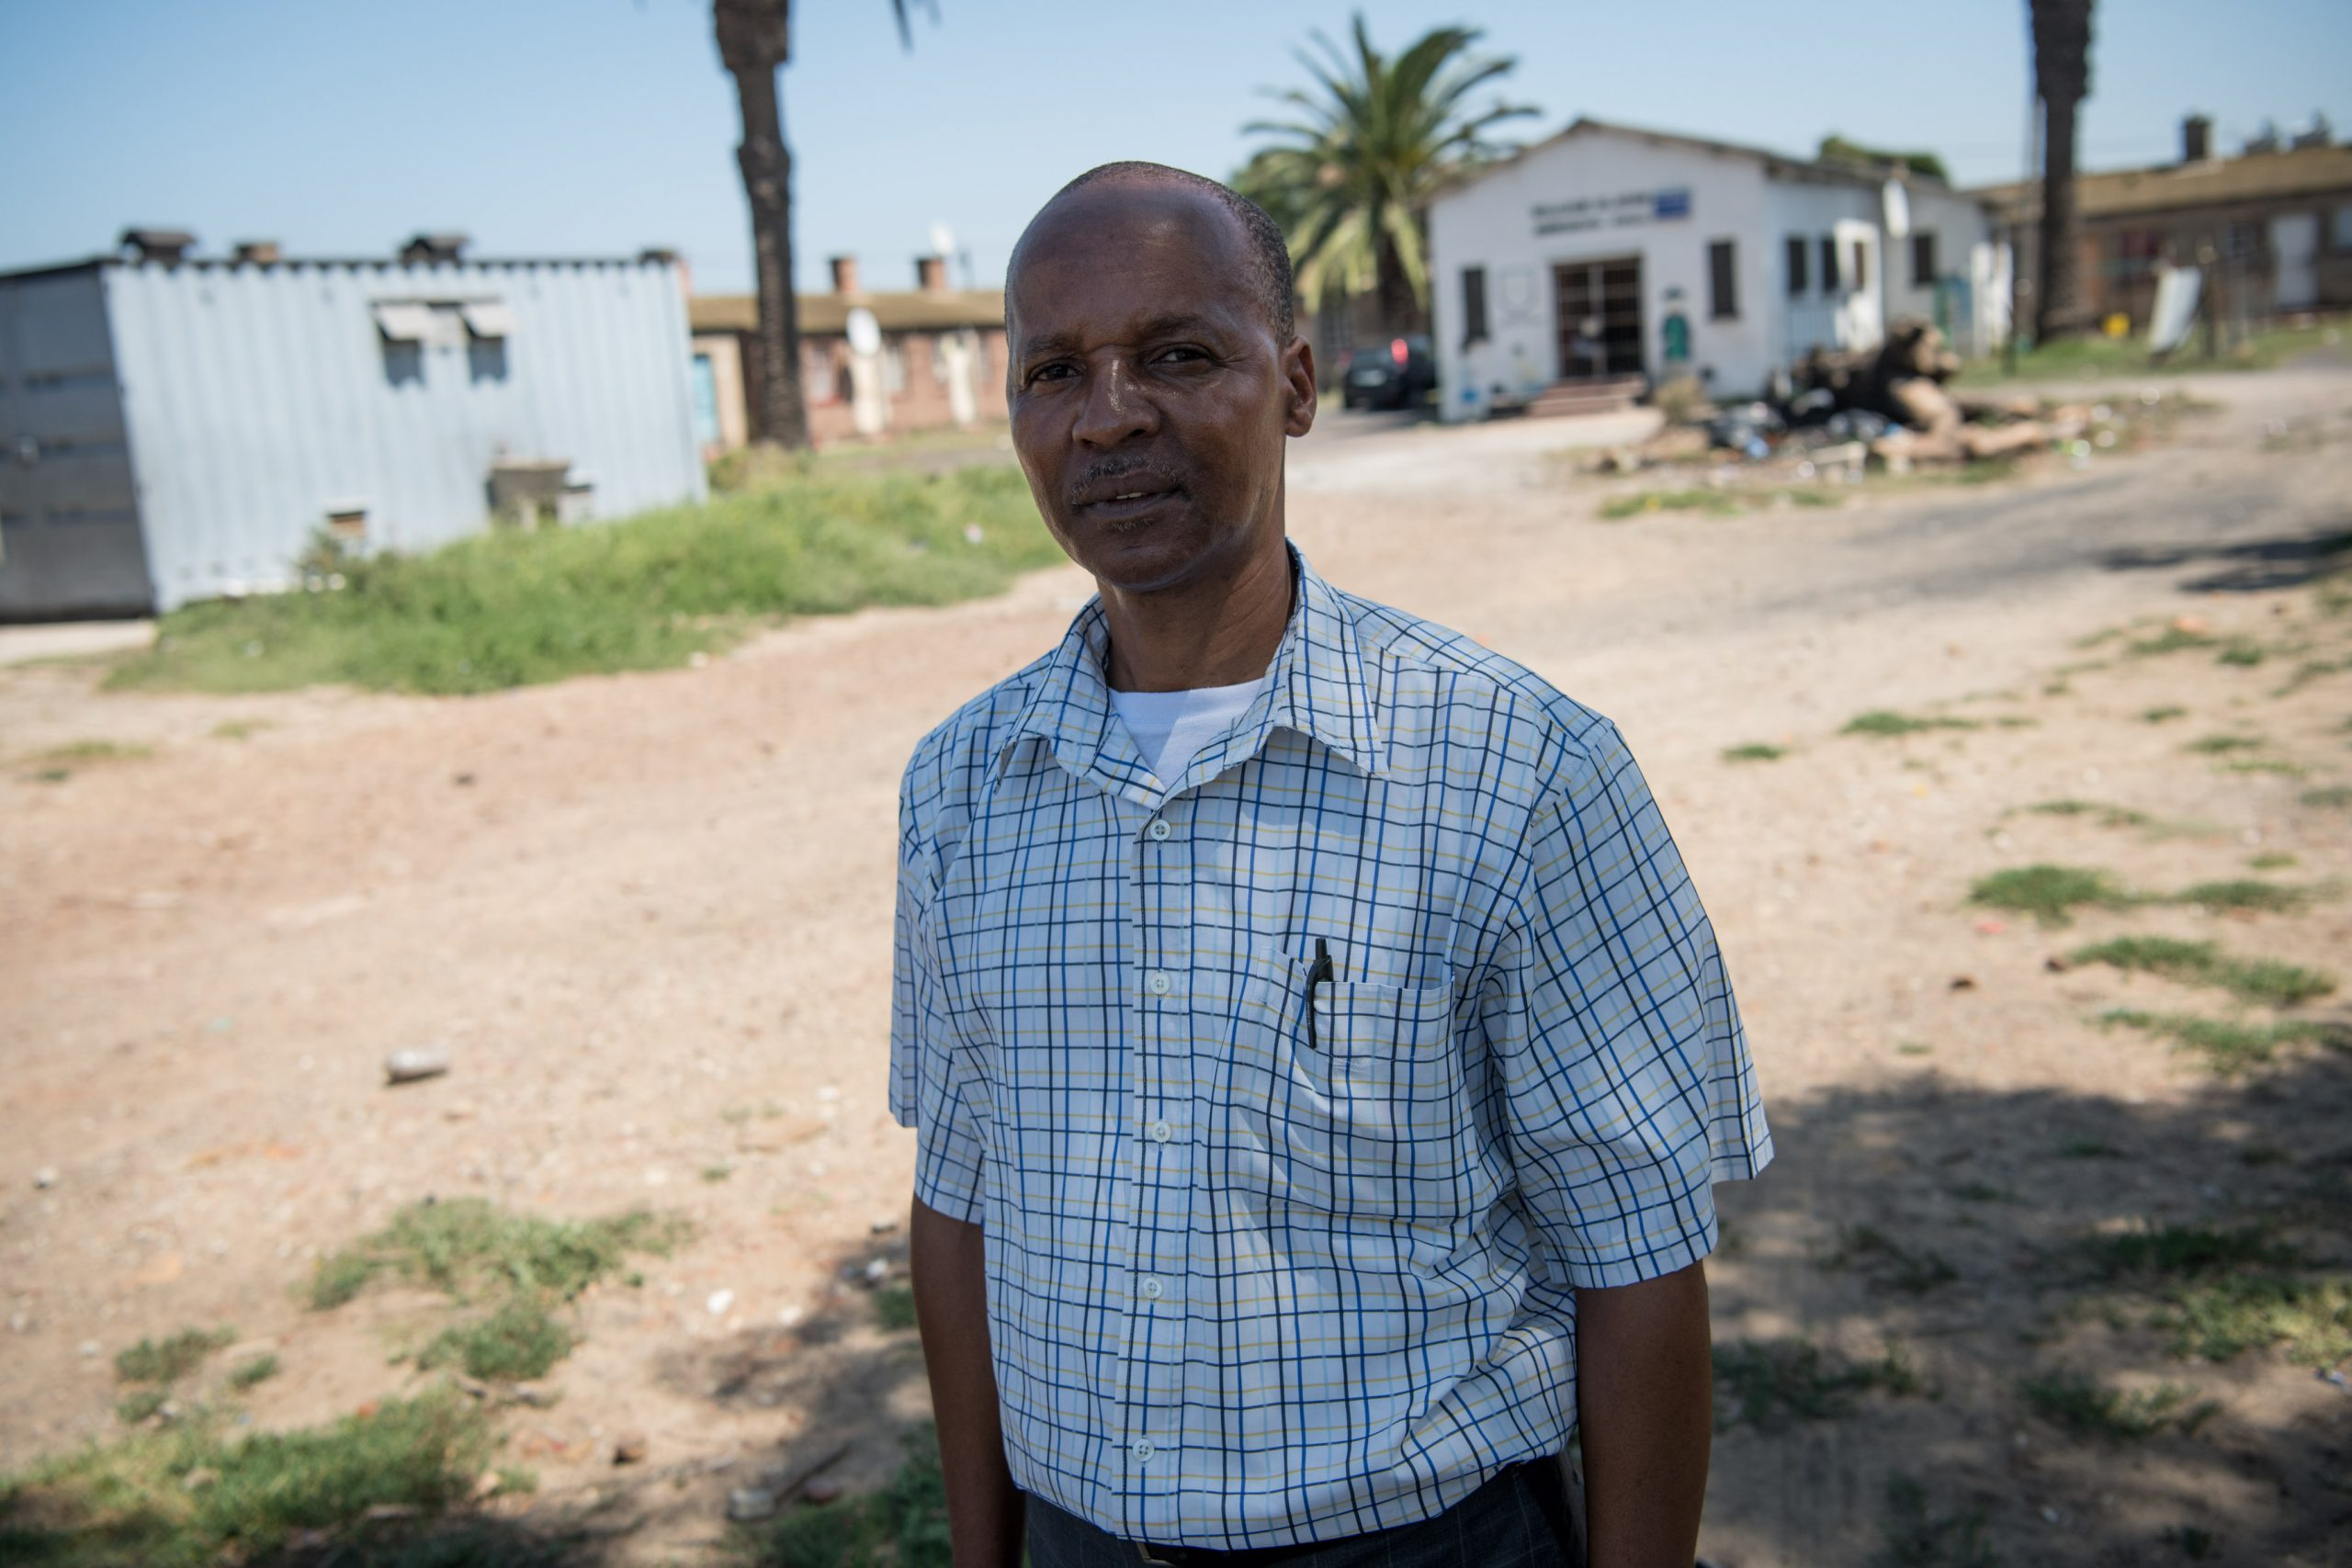 3 February 2020: Vuyani Dyantyi has been campaigning to get the homes fixed for years, despite no longer being the ANC ward councillor for the area.